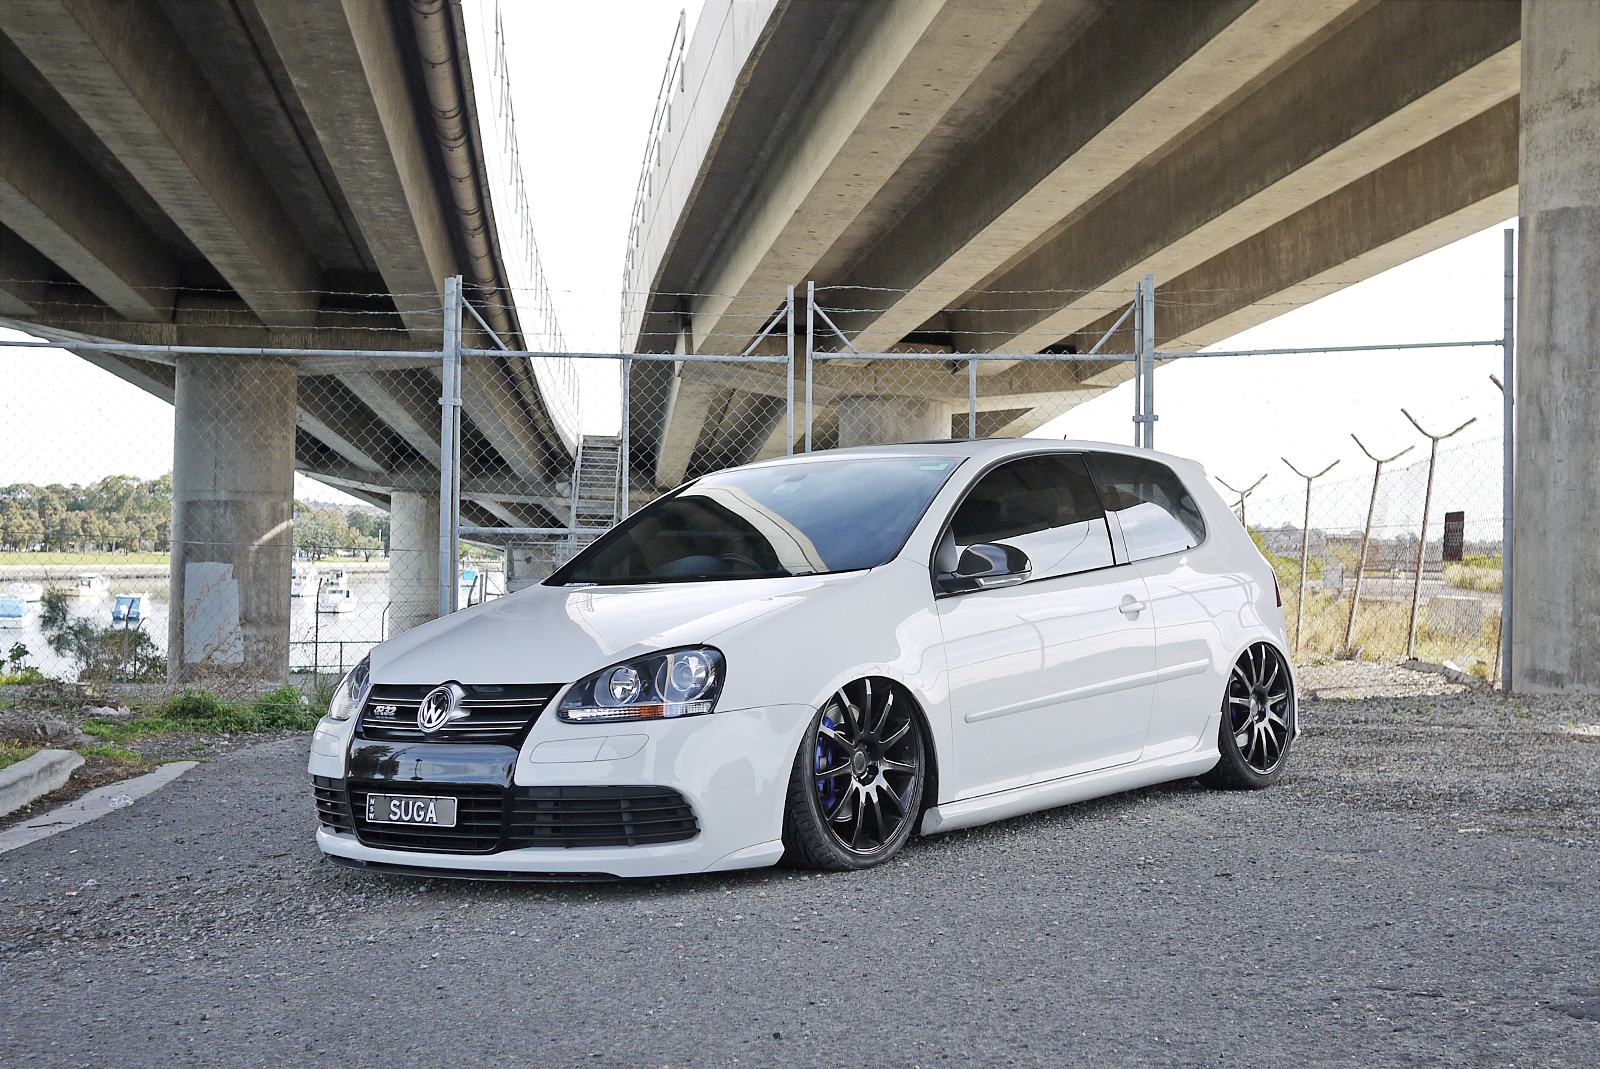 the gallery for vw golf r32 white. Black Bedroom Furniture Sets. Home Design Ideas